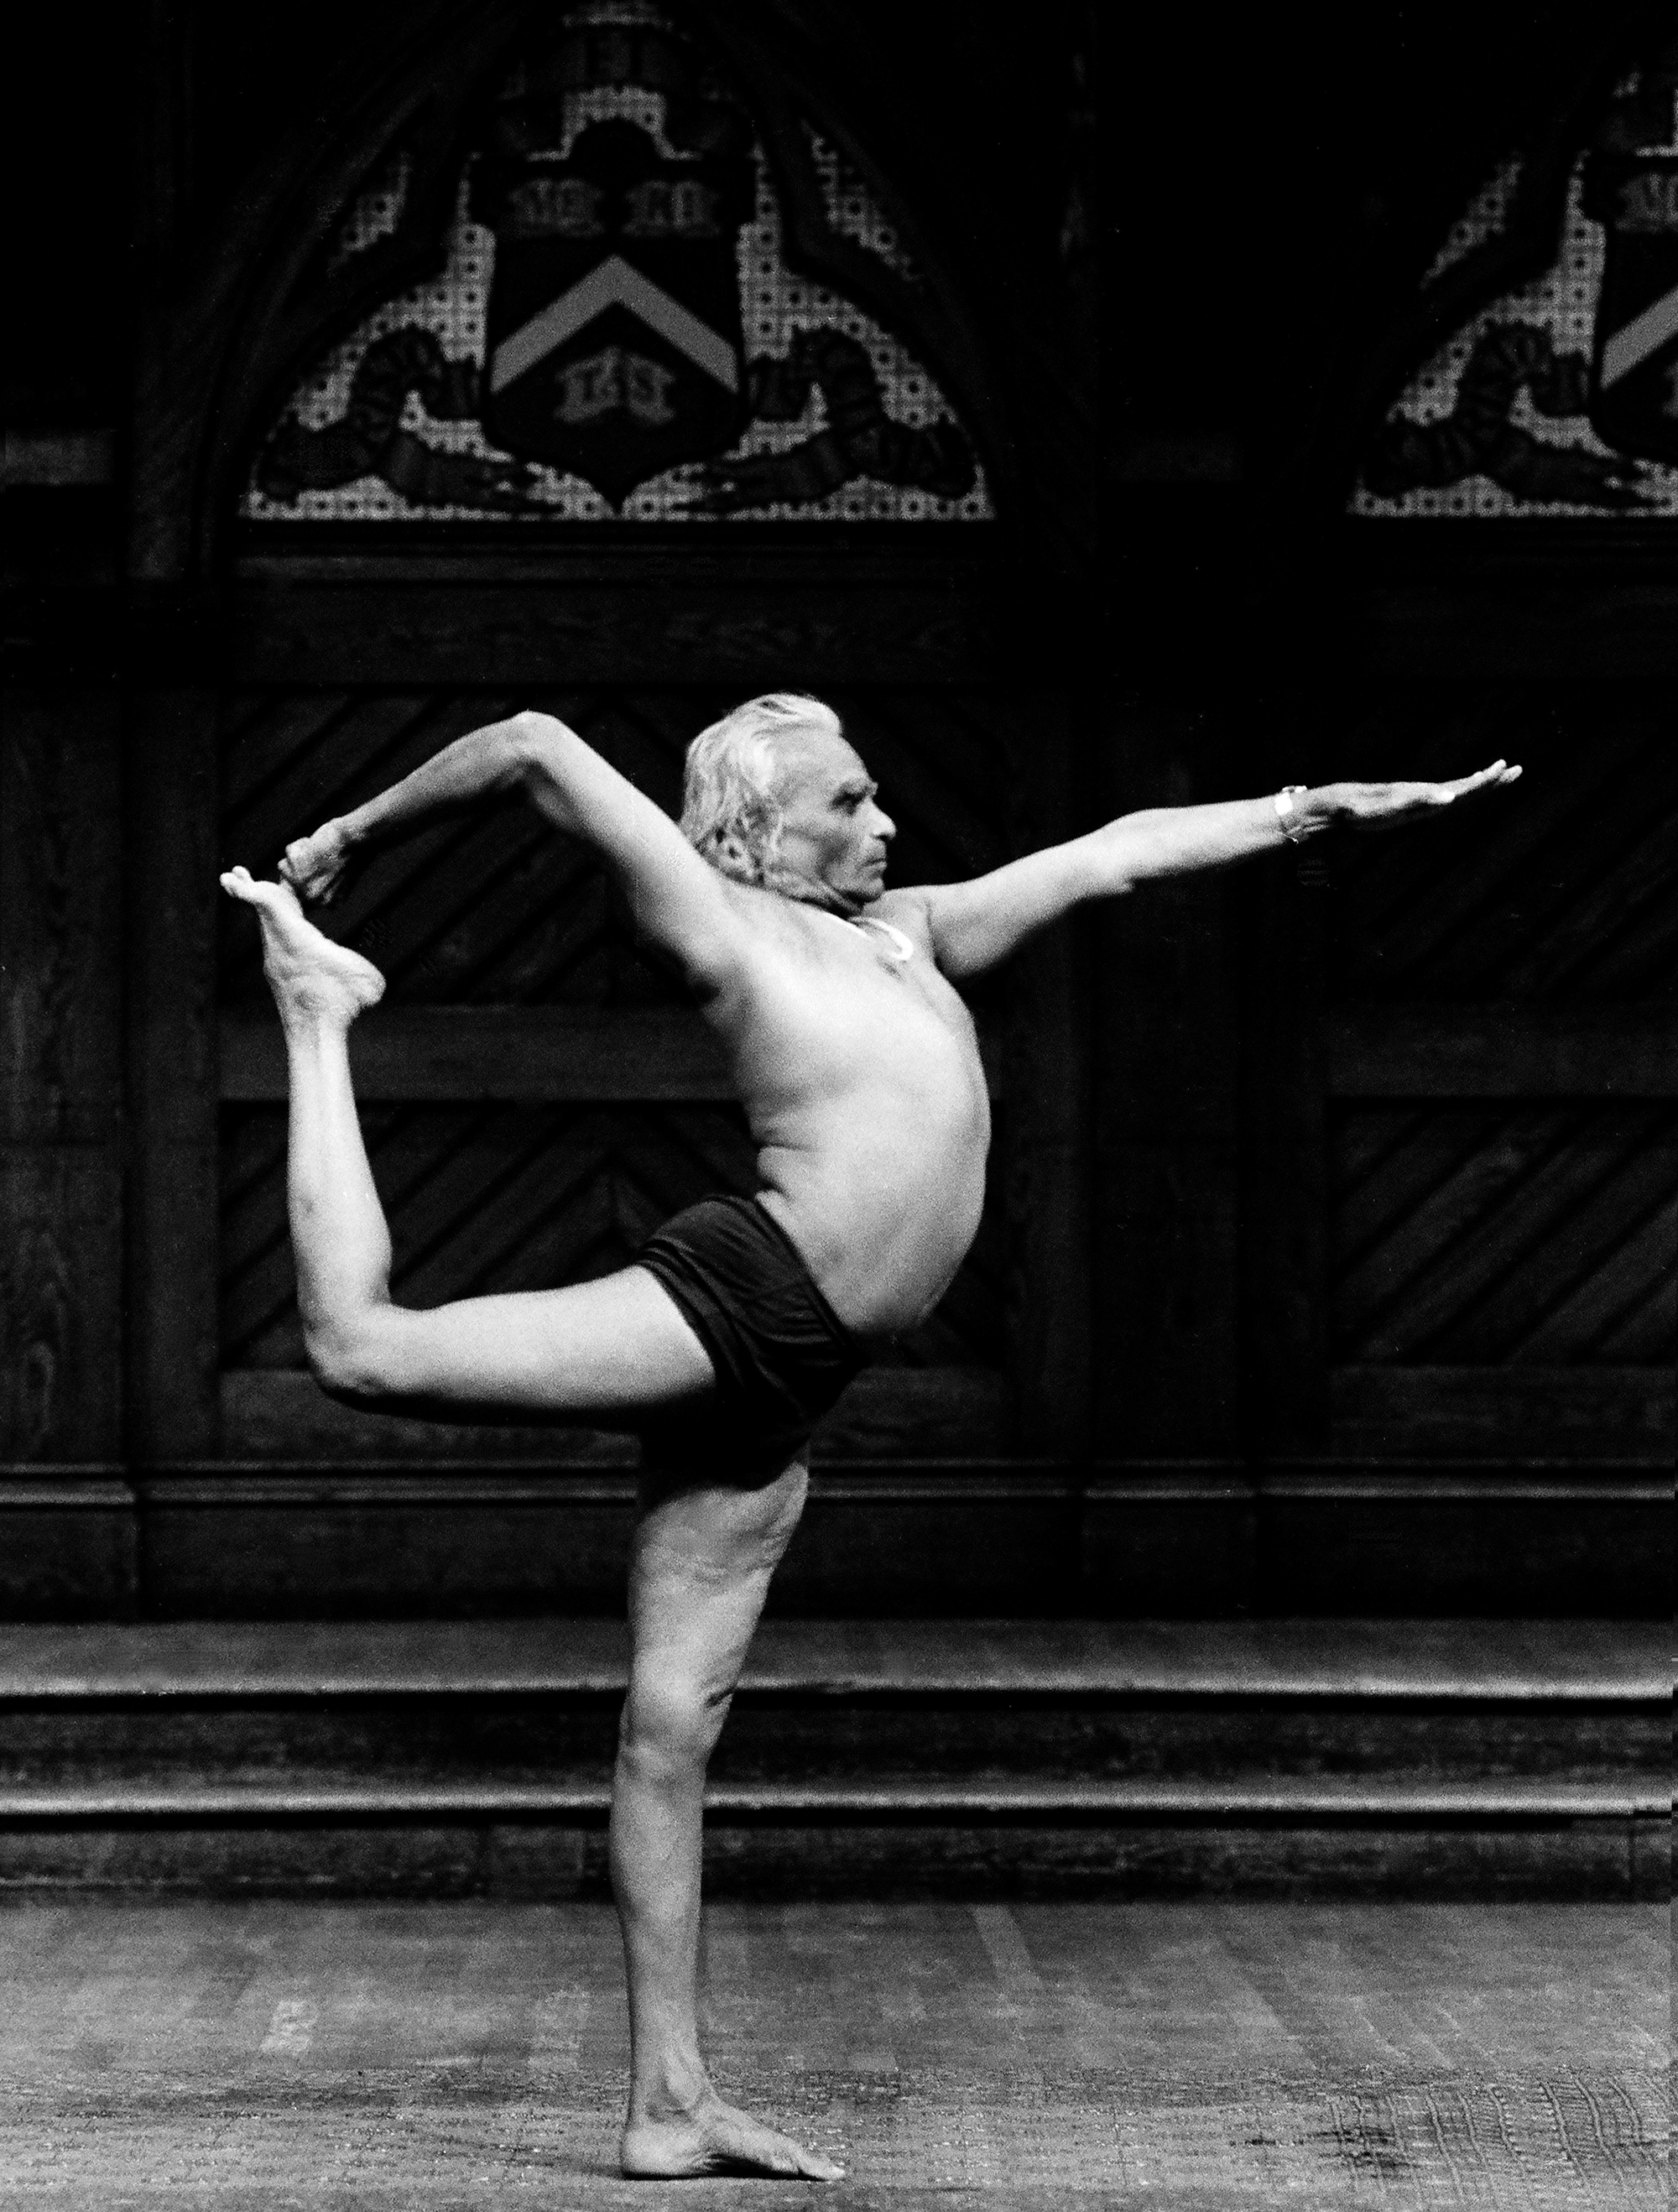 B.K.S. Iyengar photographed at Yoga '87, Harvard University, 1987 by Peter Schweitzer